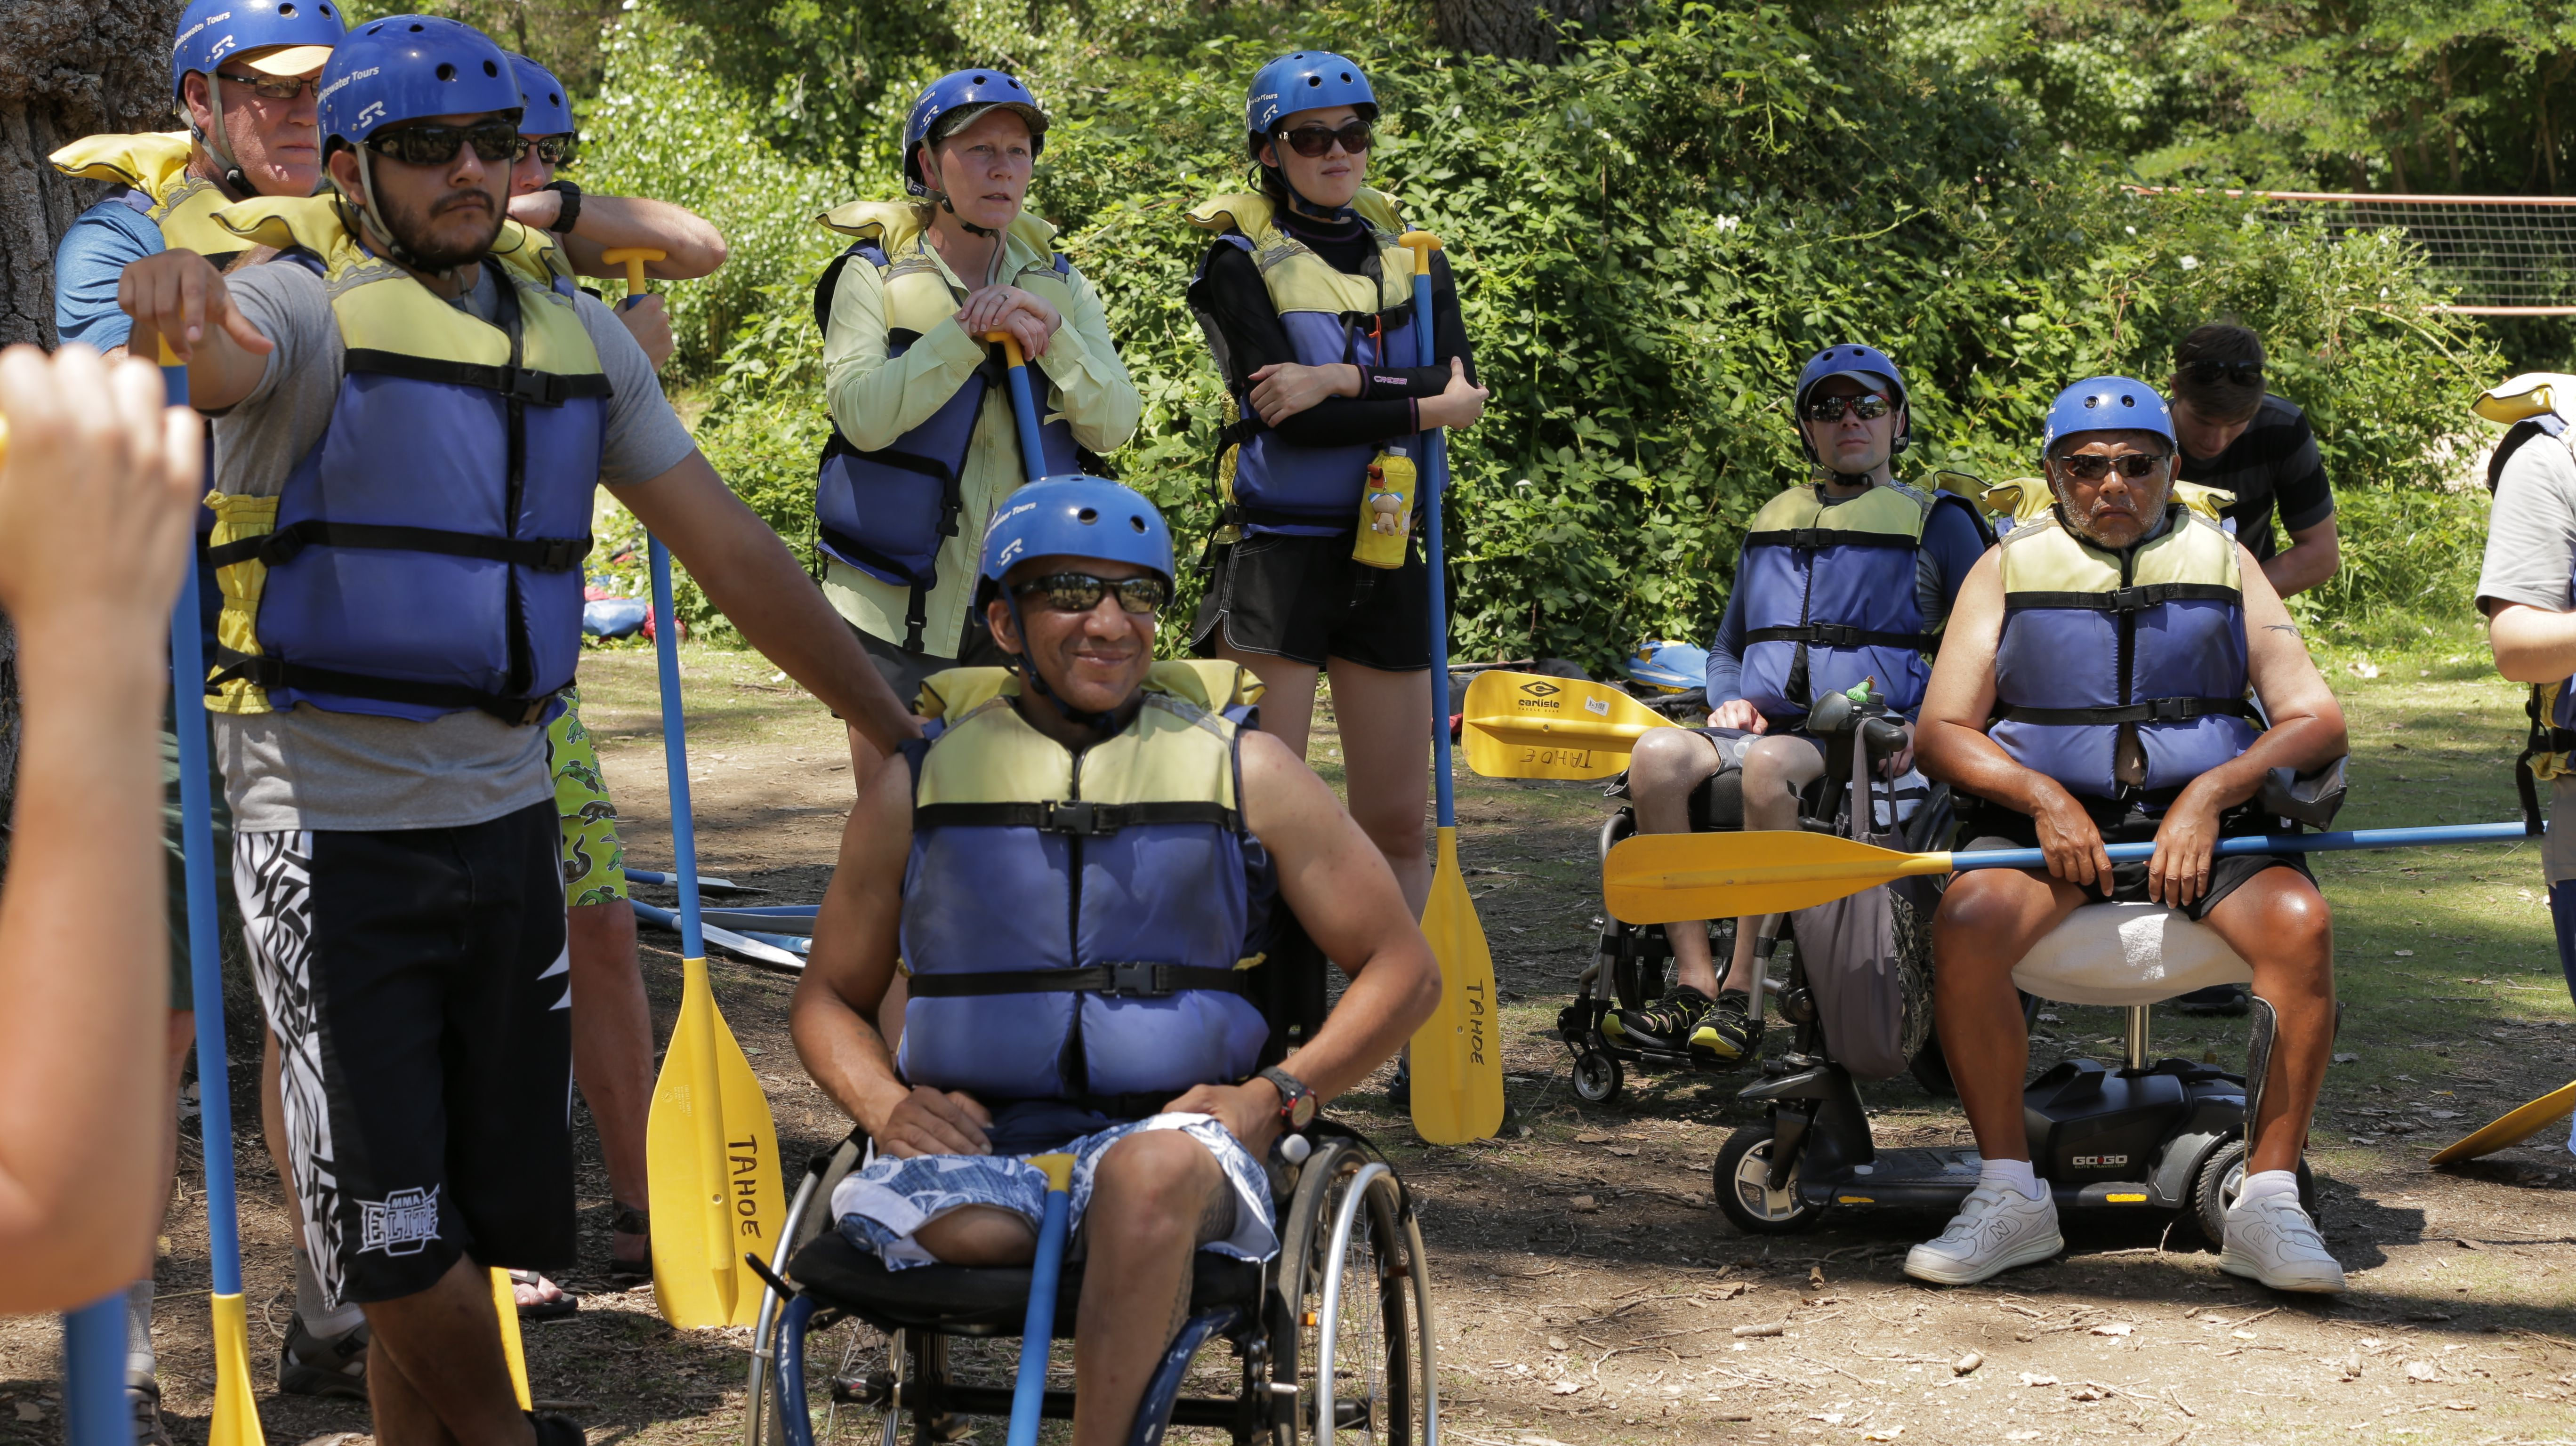 Disabled Military Service Members getting ready for